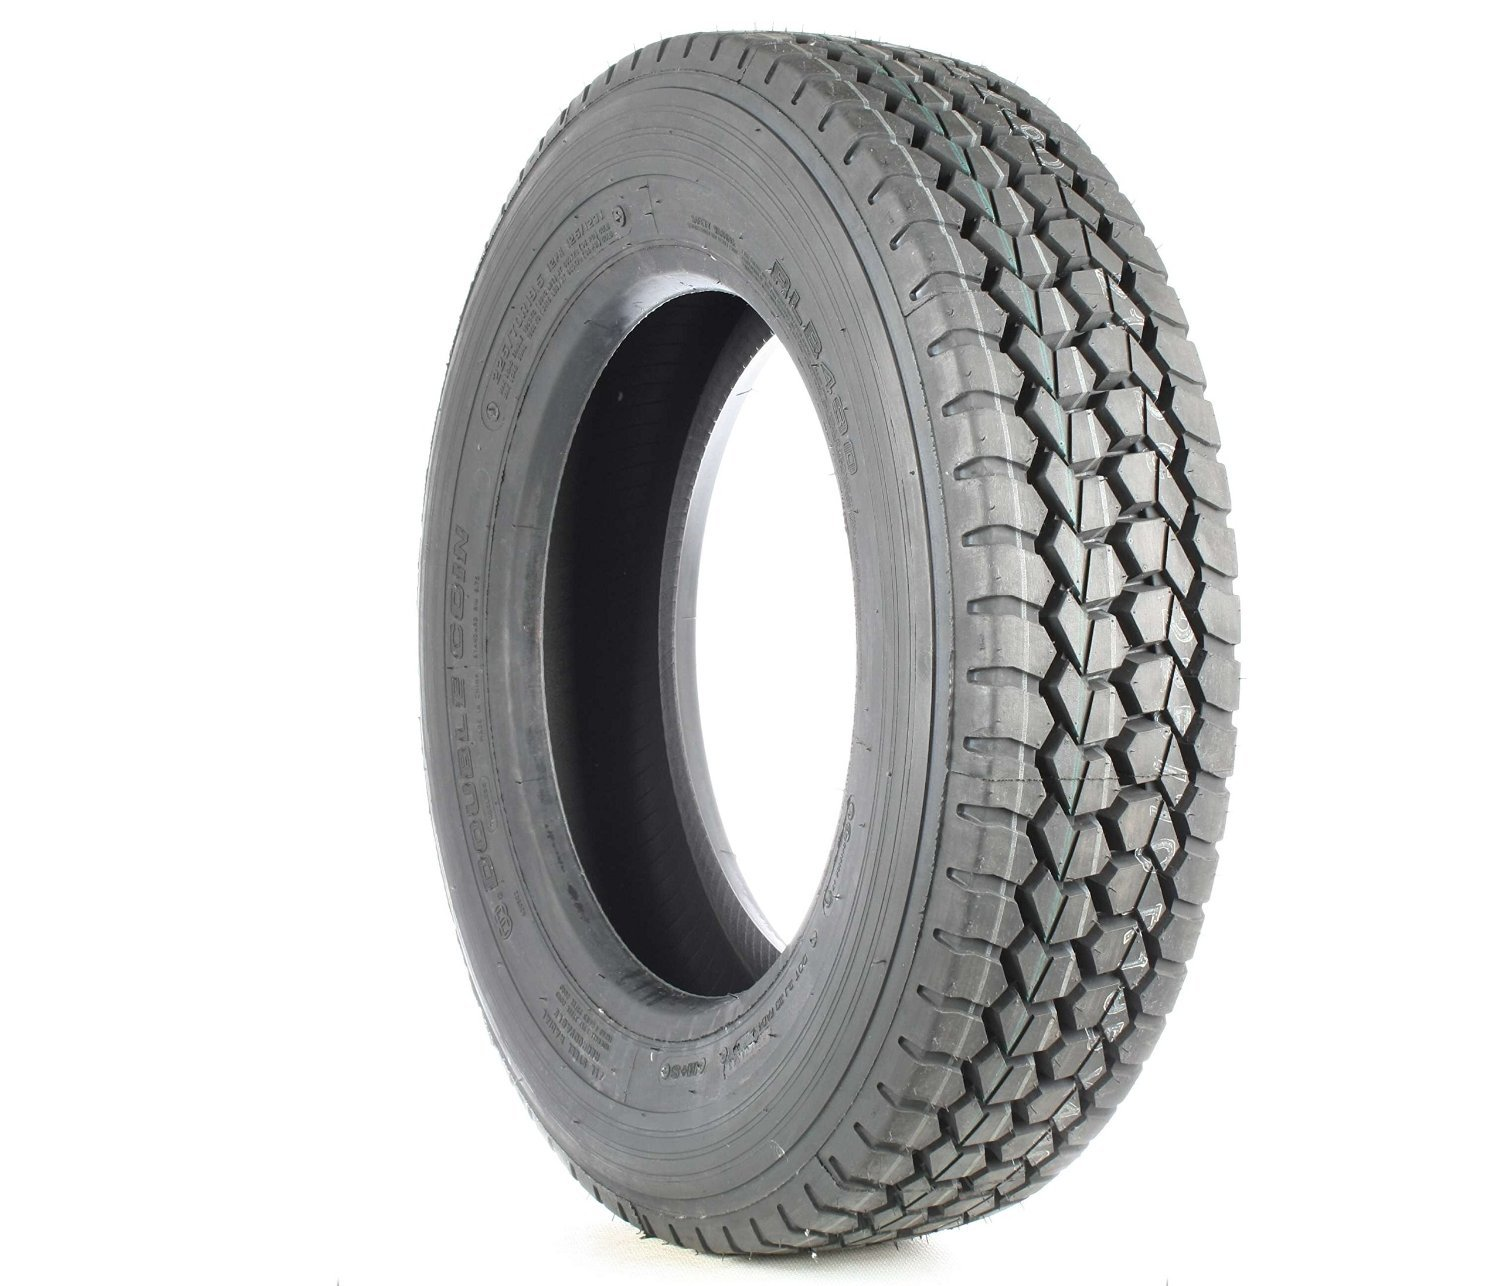 Double Coin RLB490 Low Profile Drive-Position Multi-Use Commercial Radial Truck Tire - 245/70R19.5 16 ply